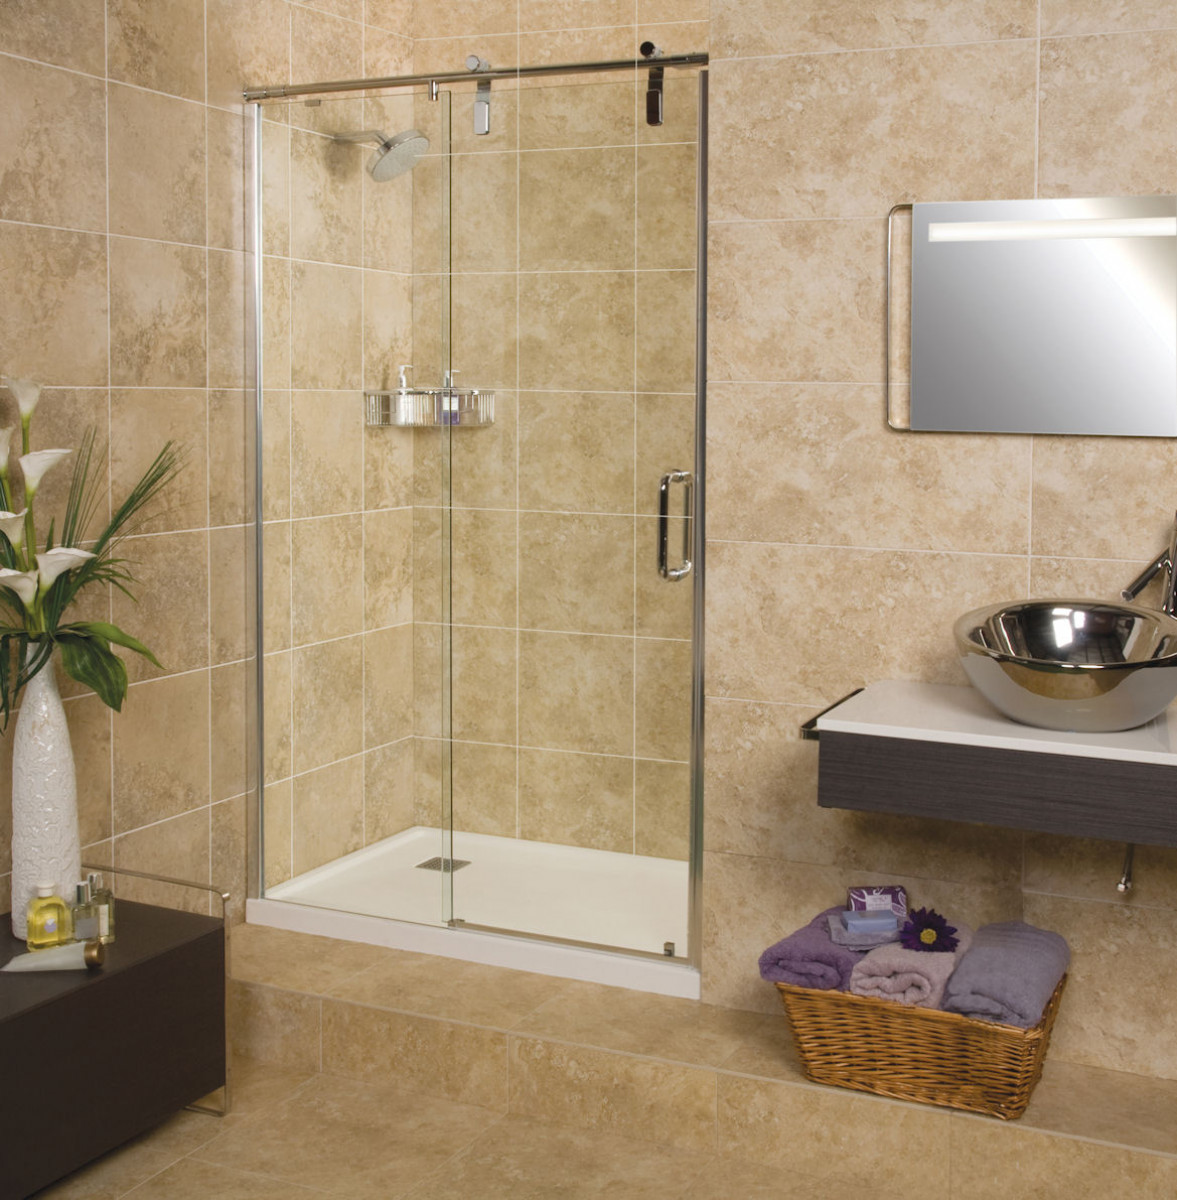 Roman Decemx Sliding Shower Door 1200mm Alcove Fitting